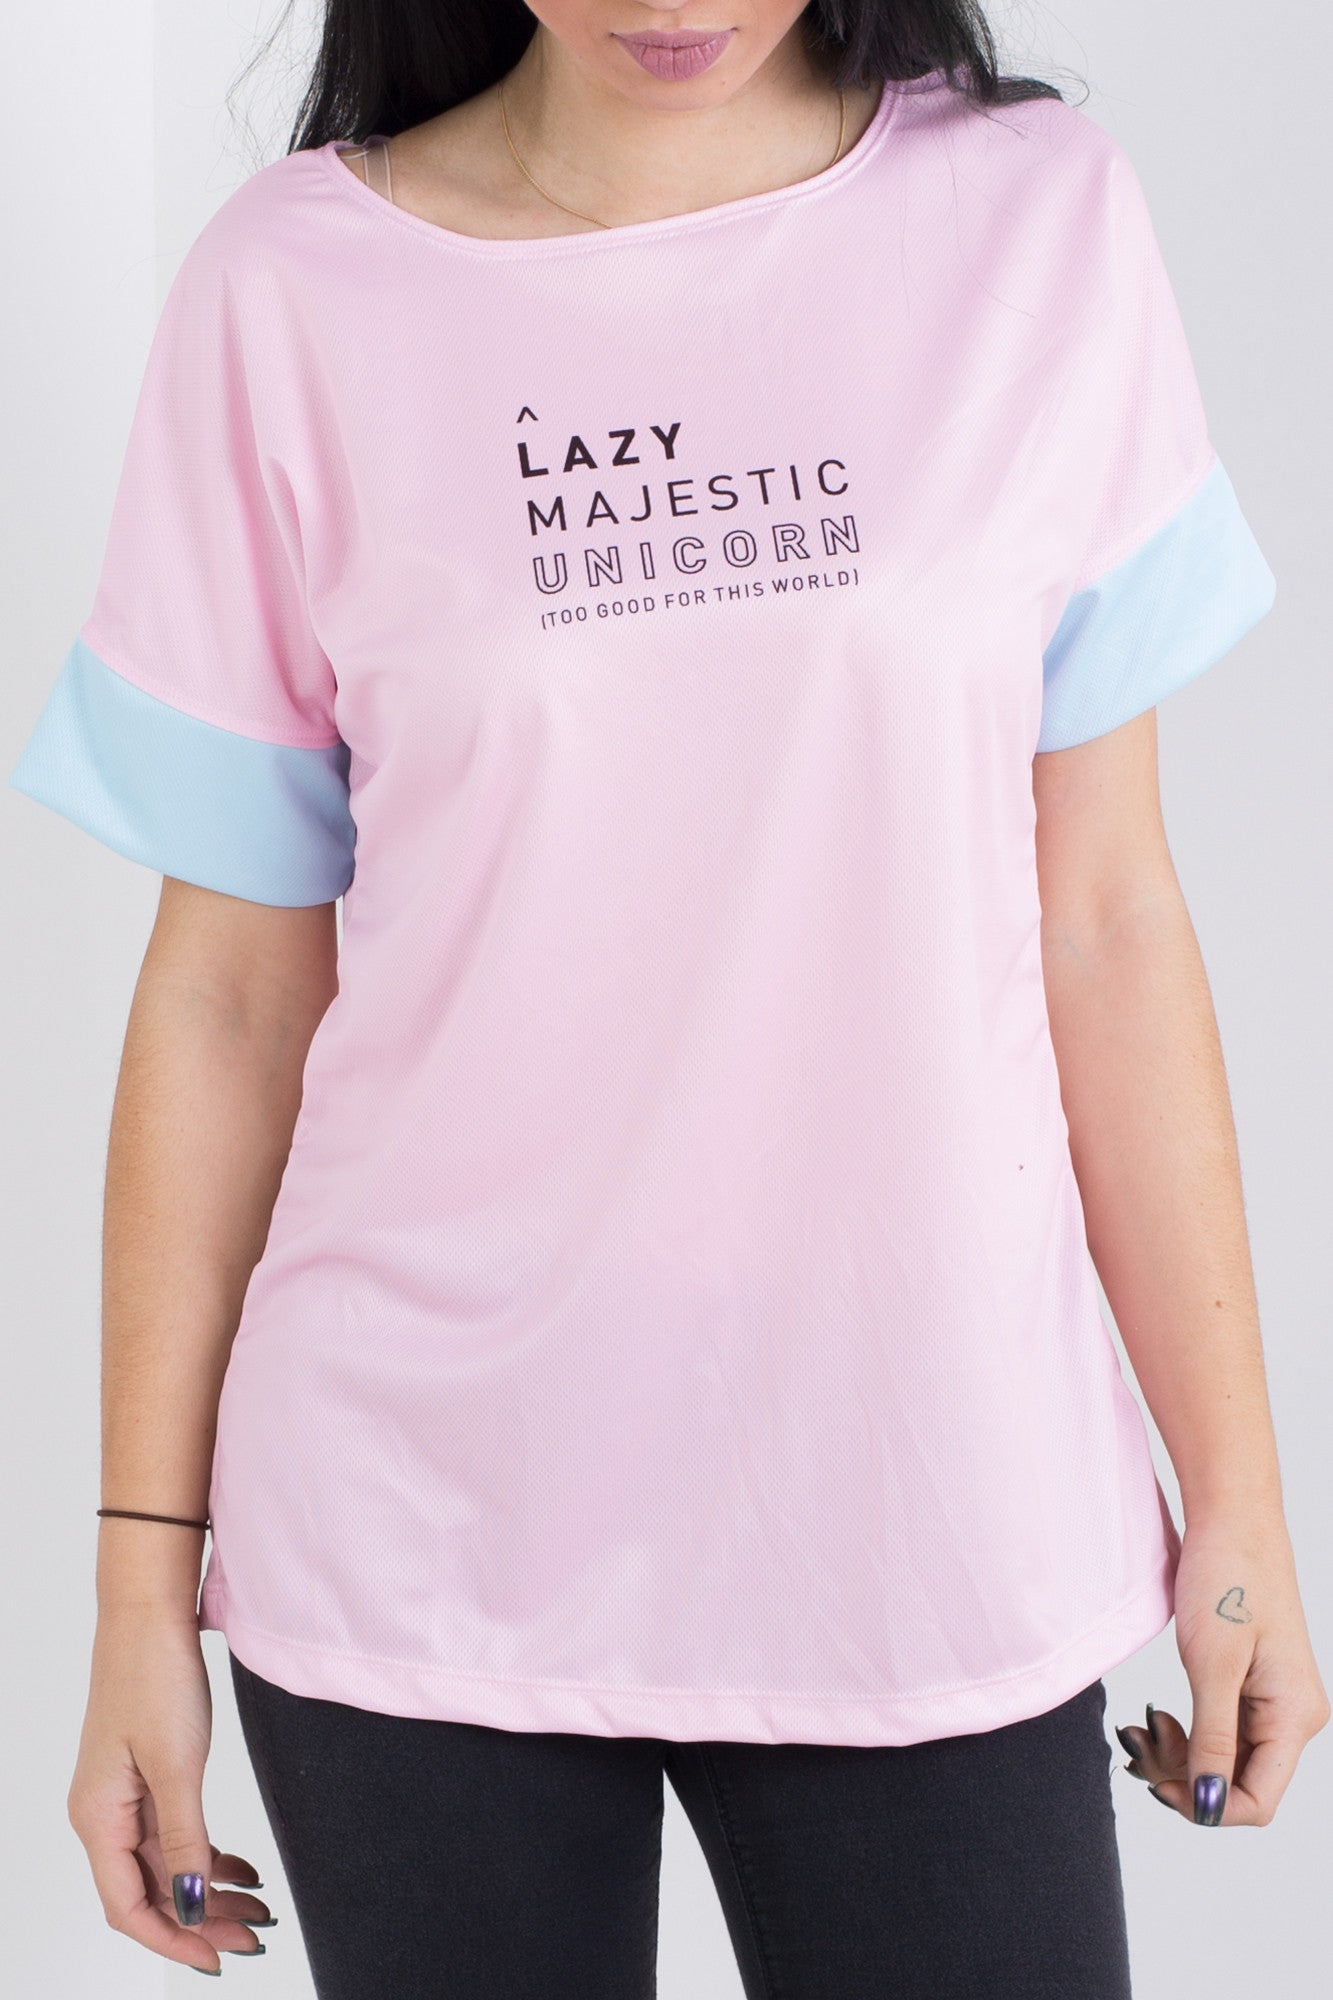 Lazy Majestic Unicorn Triple Threat Tee